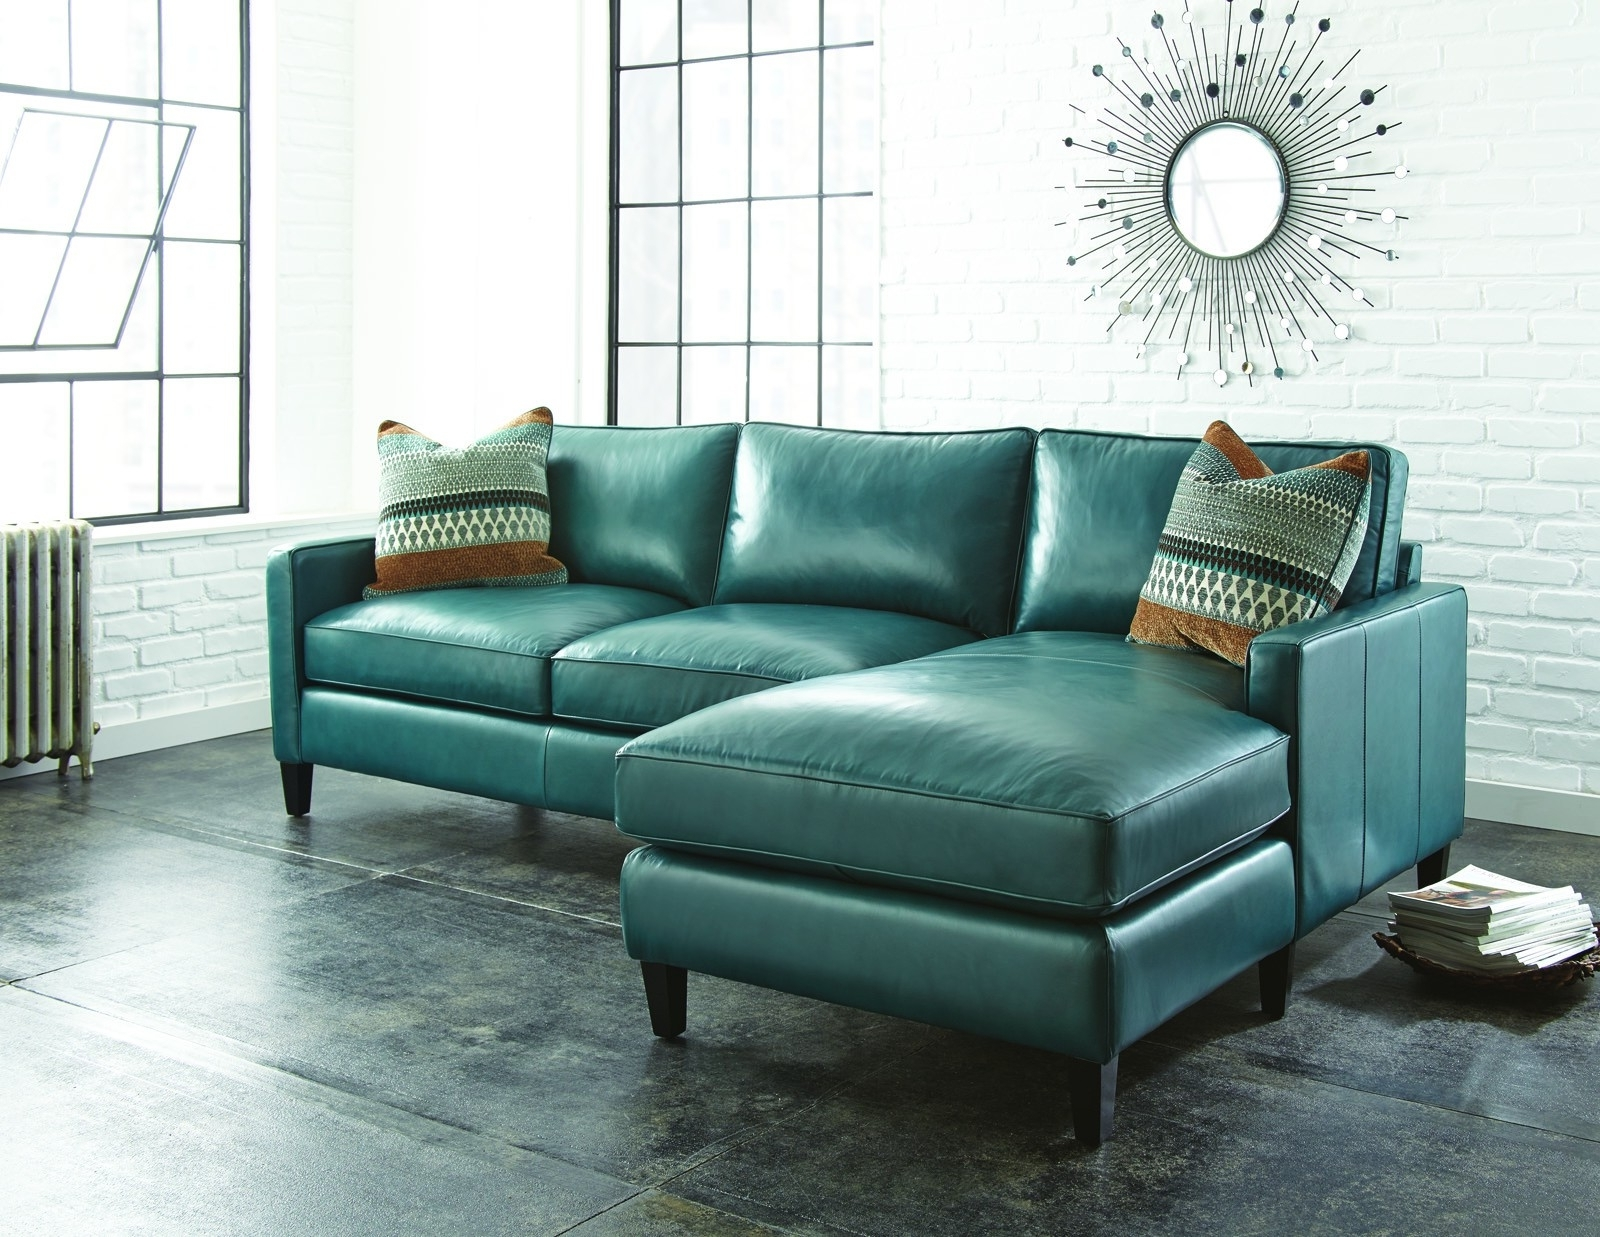 Media Room Sectional Sofas Pertaining To Well Liked New Ideas Green Leather Sectional Sofa And Would You Put This Teal (View 6 of 15)